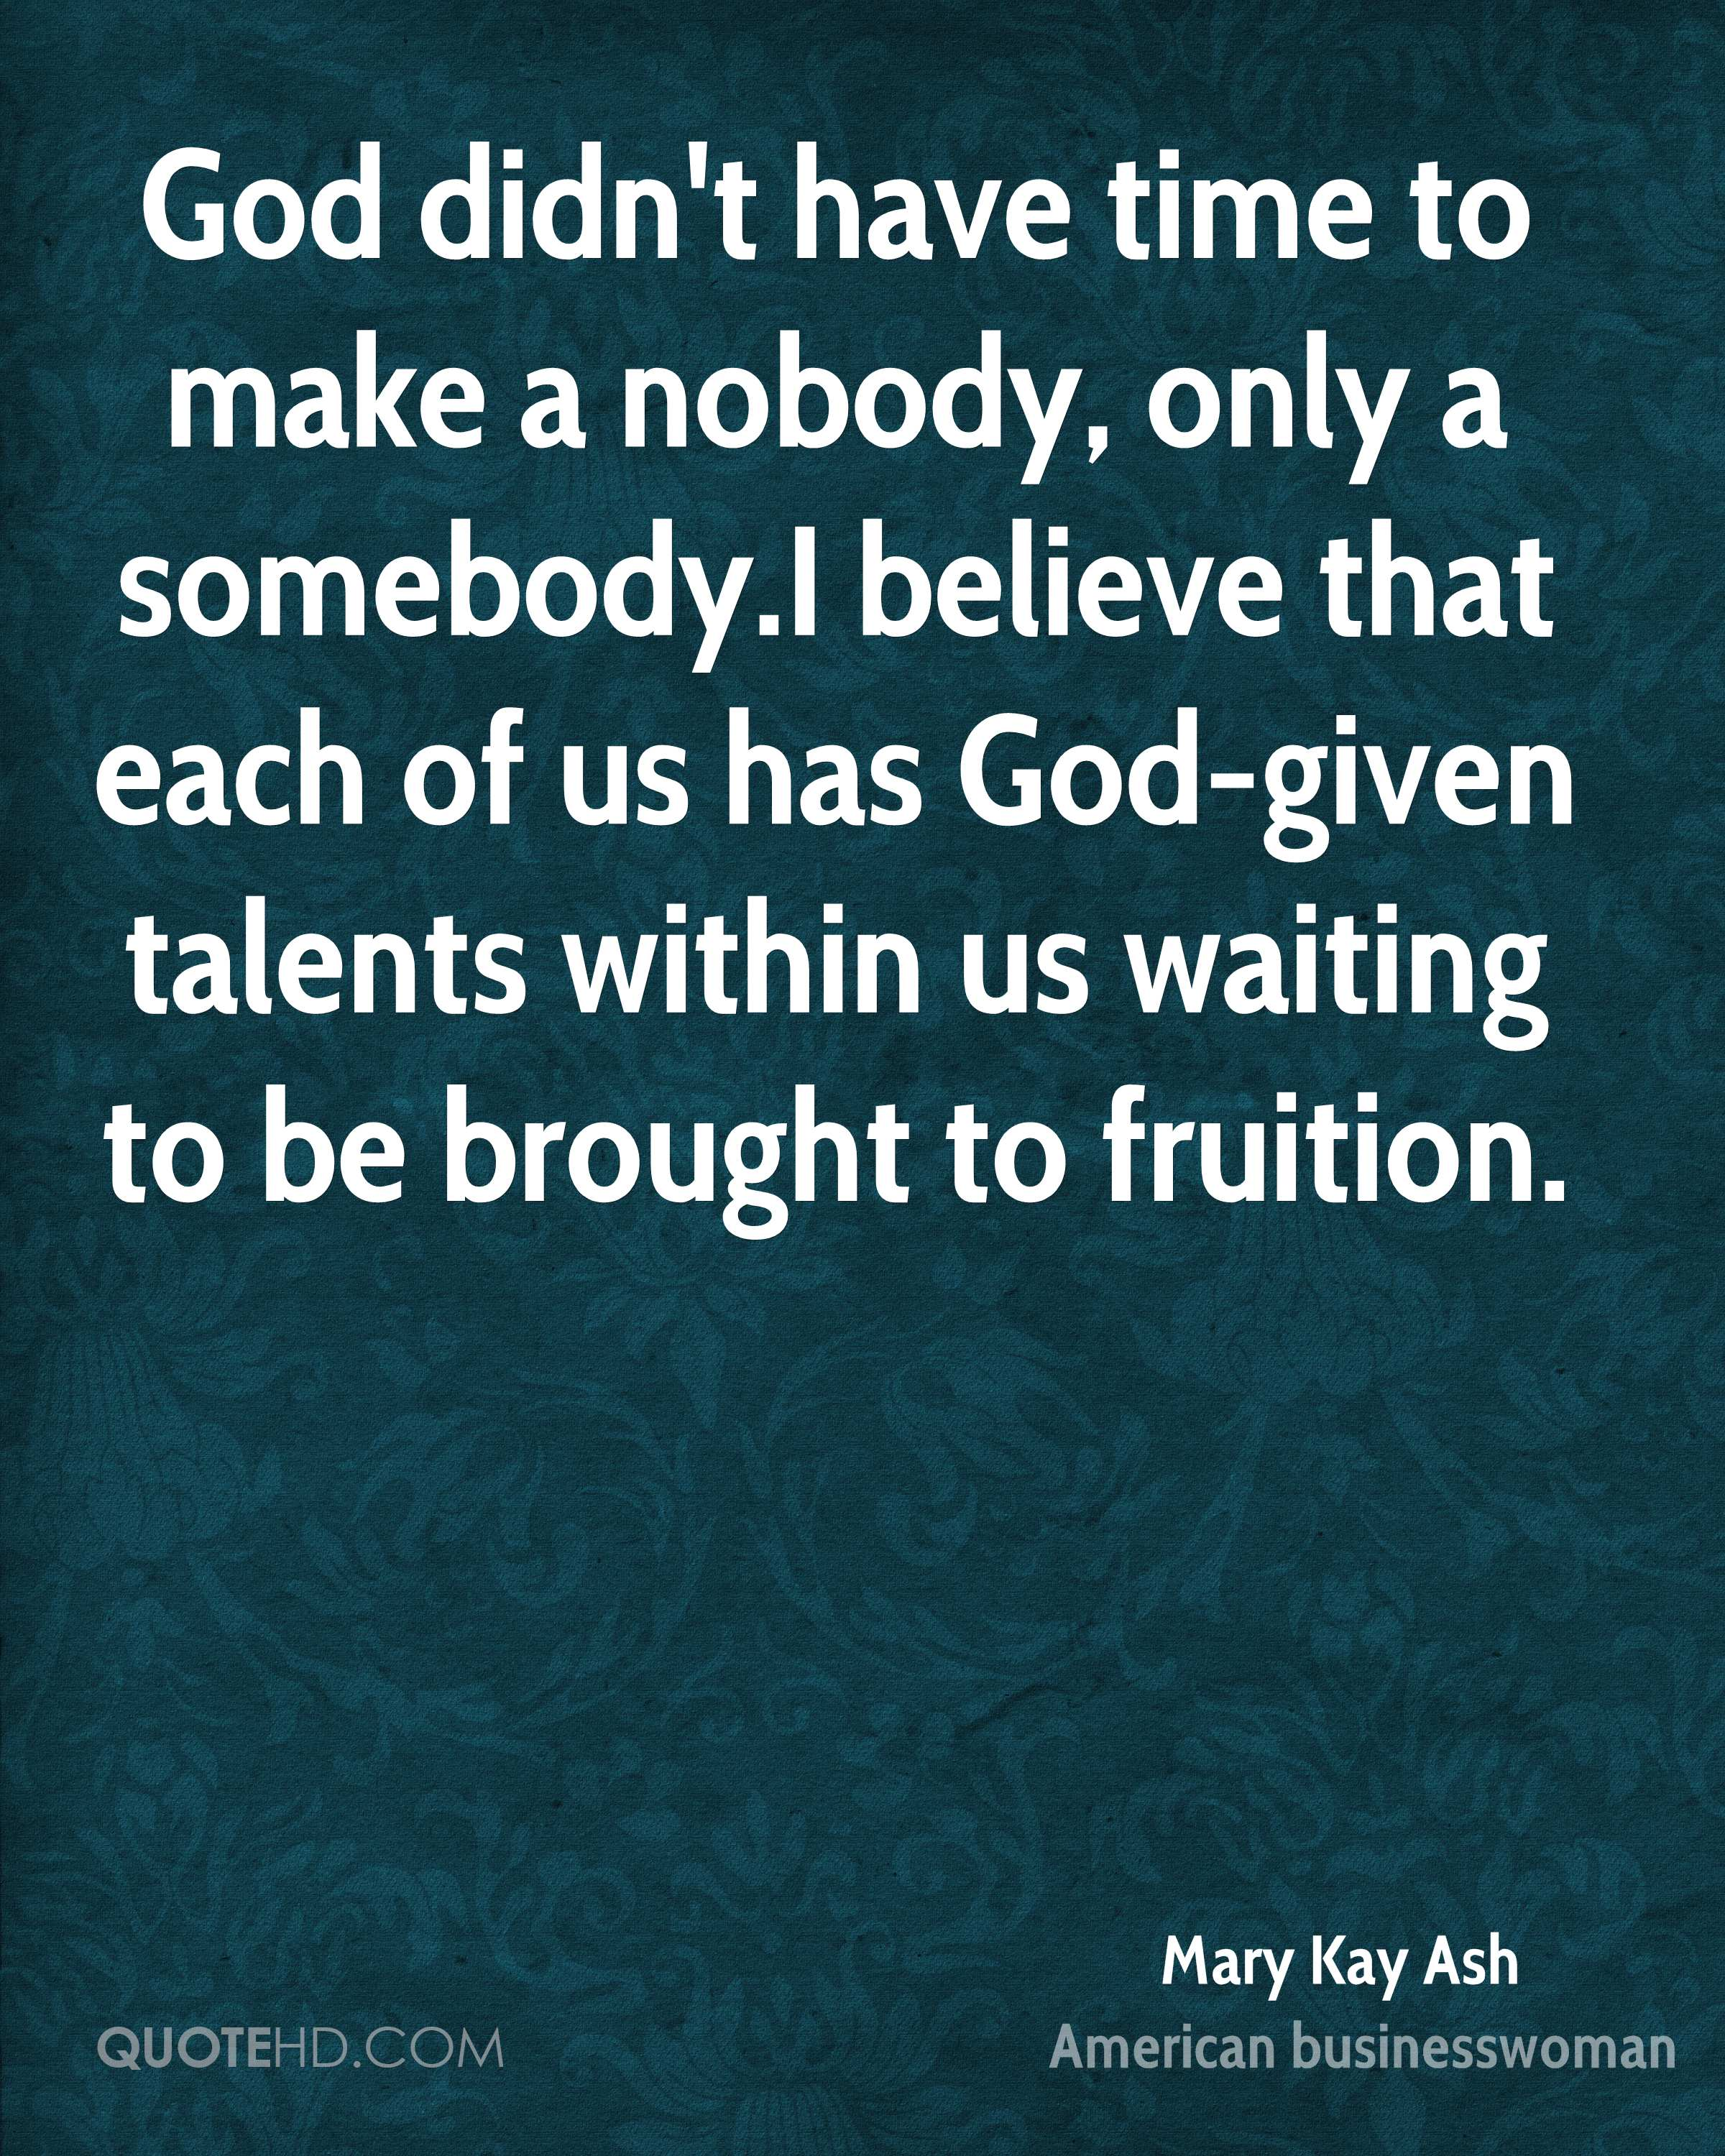 God didn't have time to make a nobody, only a somebody.I believe that each of us has God-given talents within us waiting to be brought to fruition.